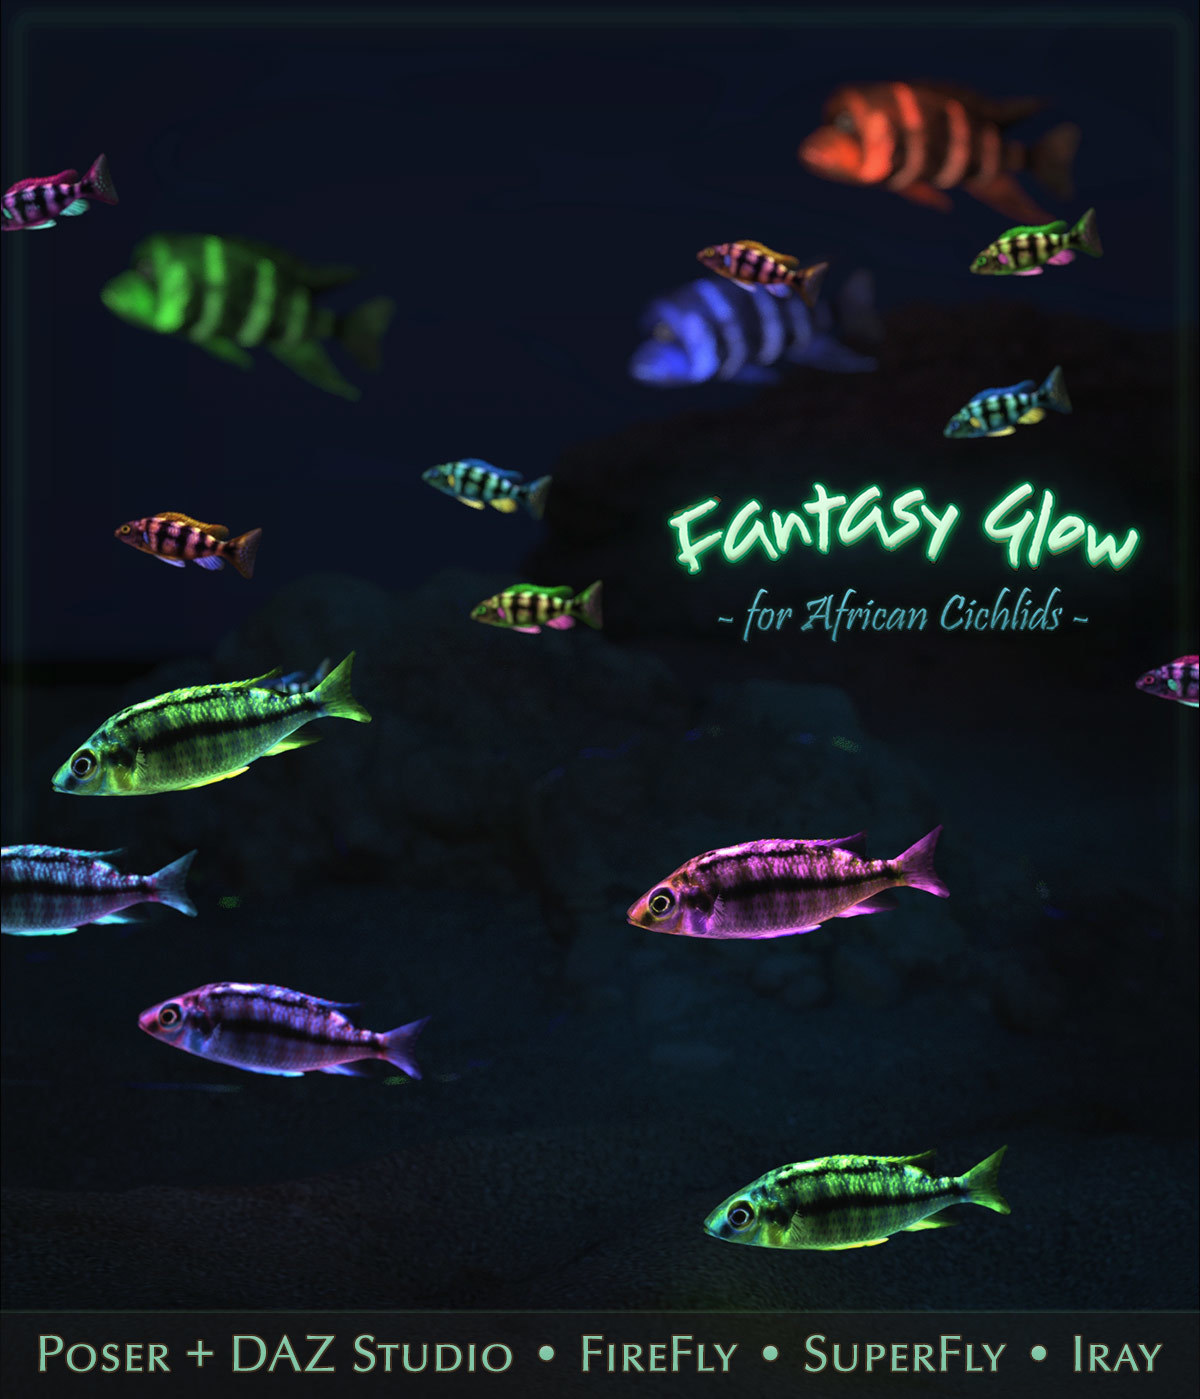 Fantasy Glow for African Cichlids